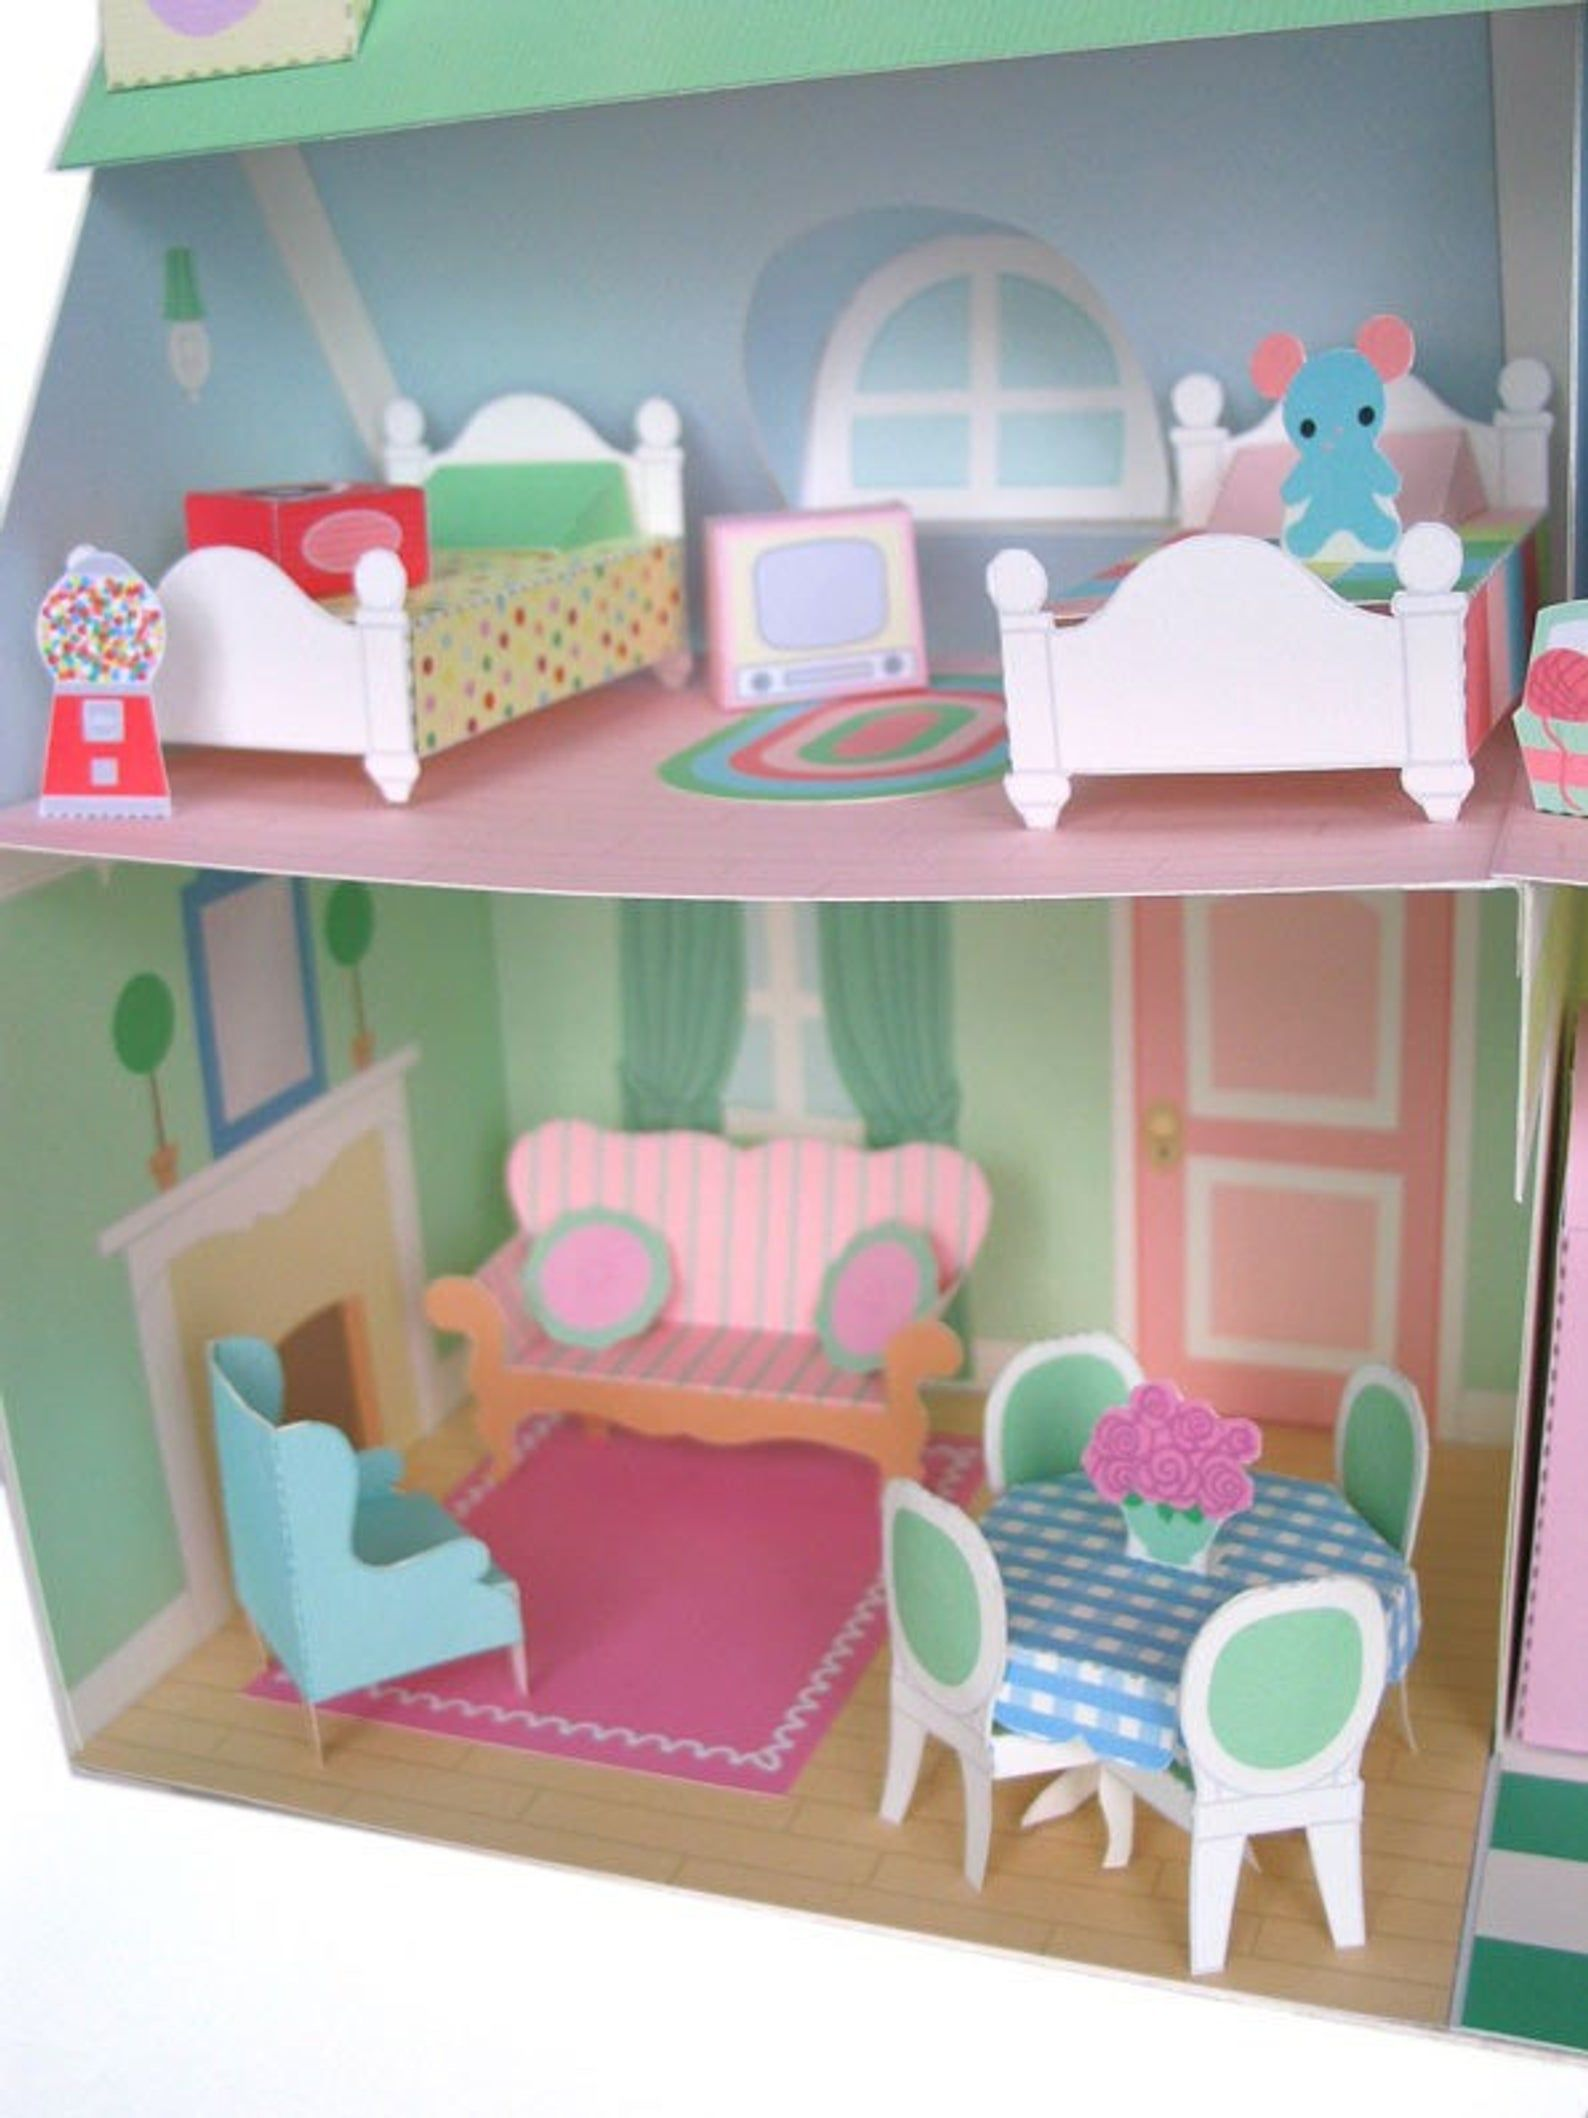 Full Size of A Doll's House Essays Pdf Download Essay